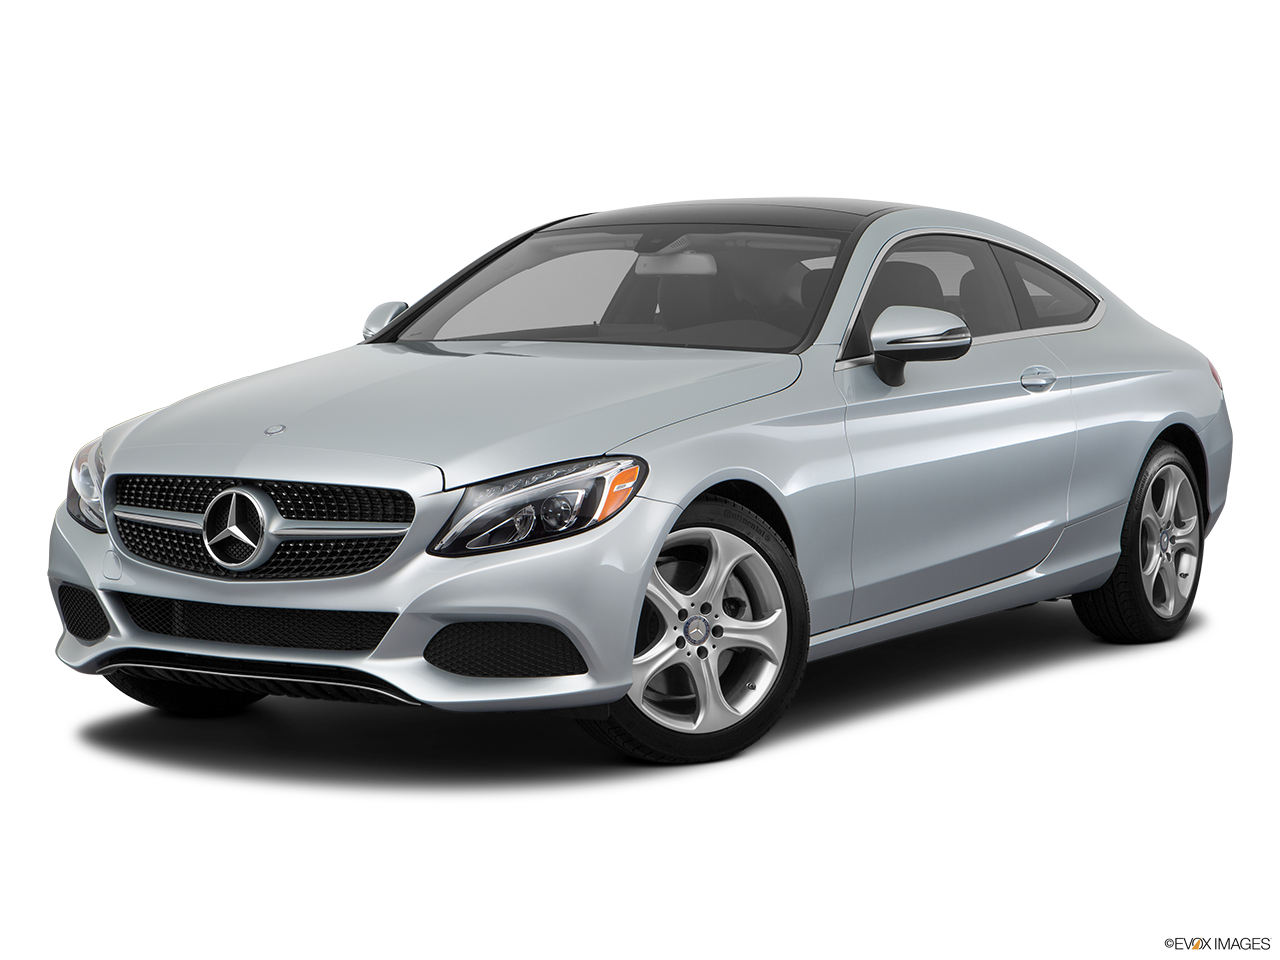 Test Drive A 2017 Mercedes-Benz C300 Coupe at Wagner Mercedes-Benz of Shrewsbury in Shrewsbury